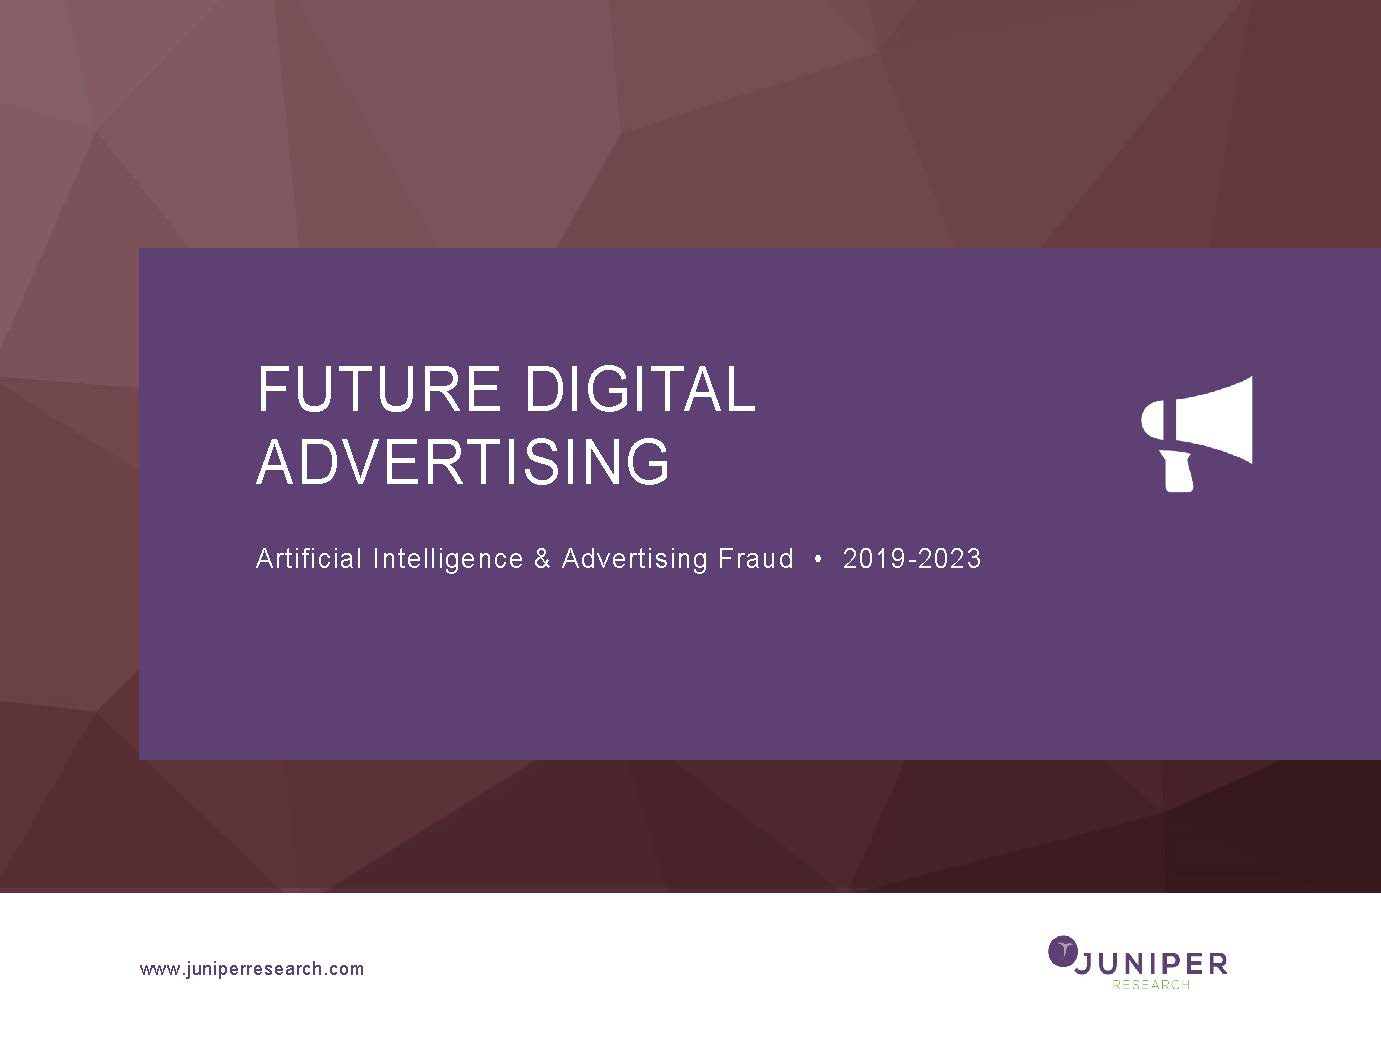 Future Digital Advertising